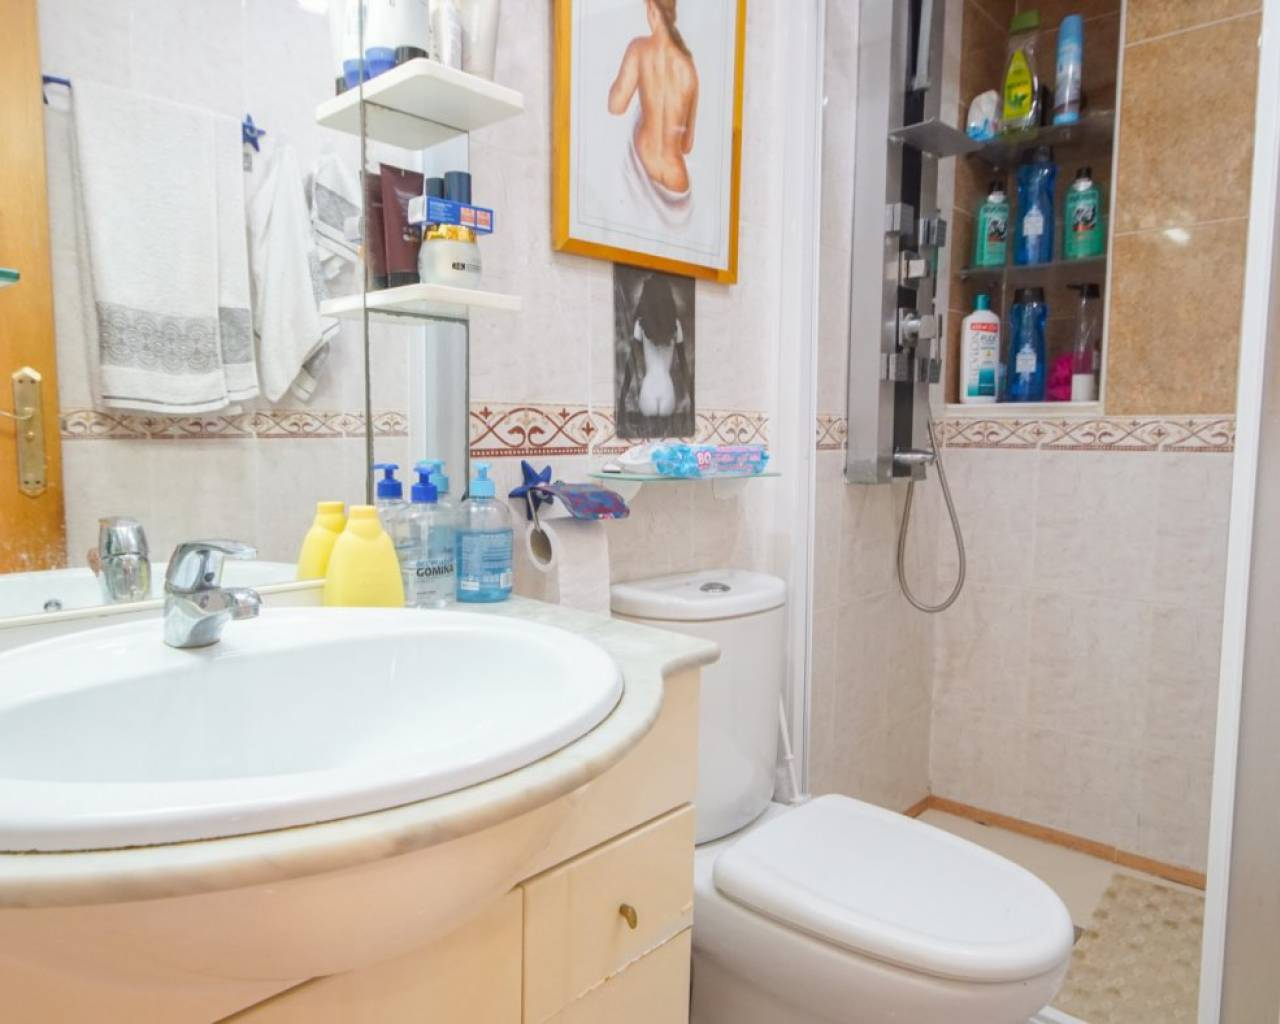 Sale - Apartment - Torrevieja - Cabo cervera